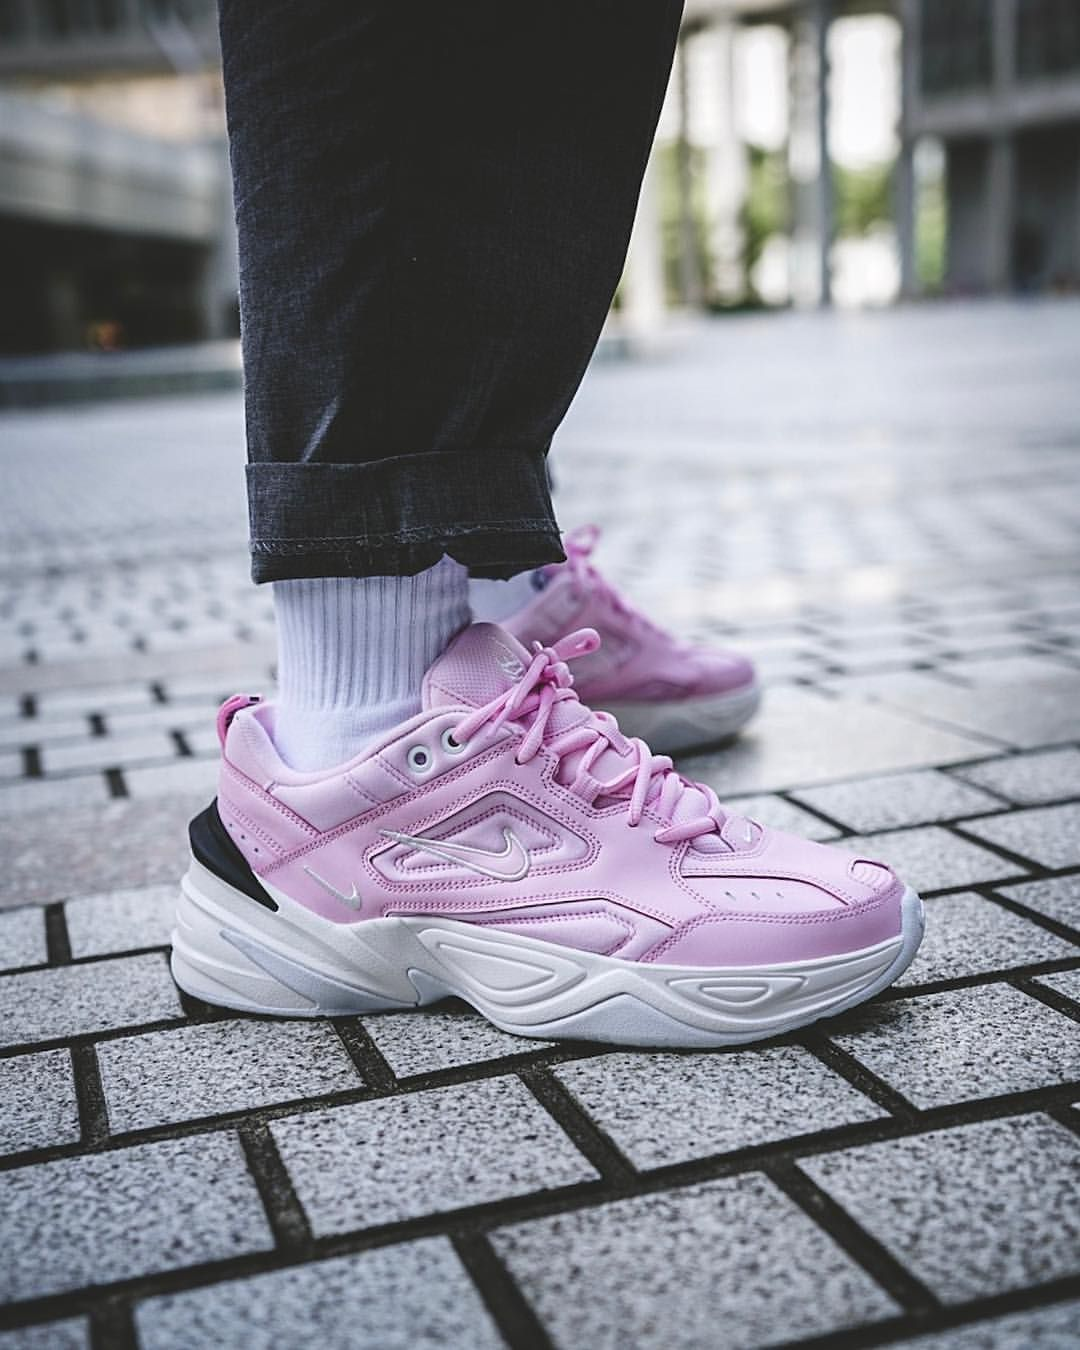 6f365dd6b0cd Nike M2K Tekno  Pink Wolle Kaufen, Turnschuhe Trends, Nike Outfits, Crepes,